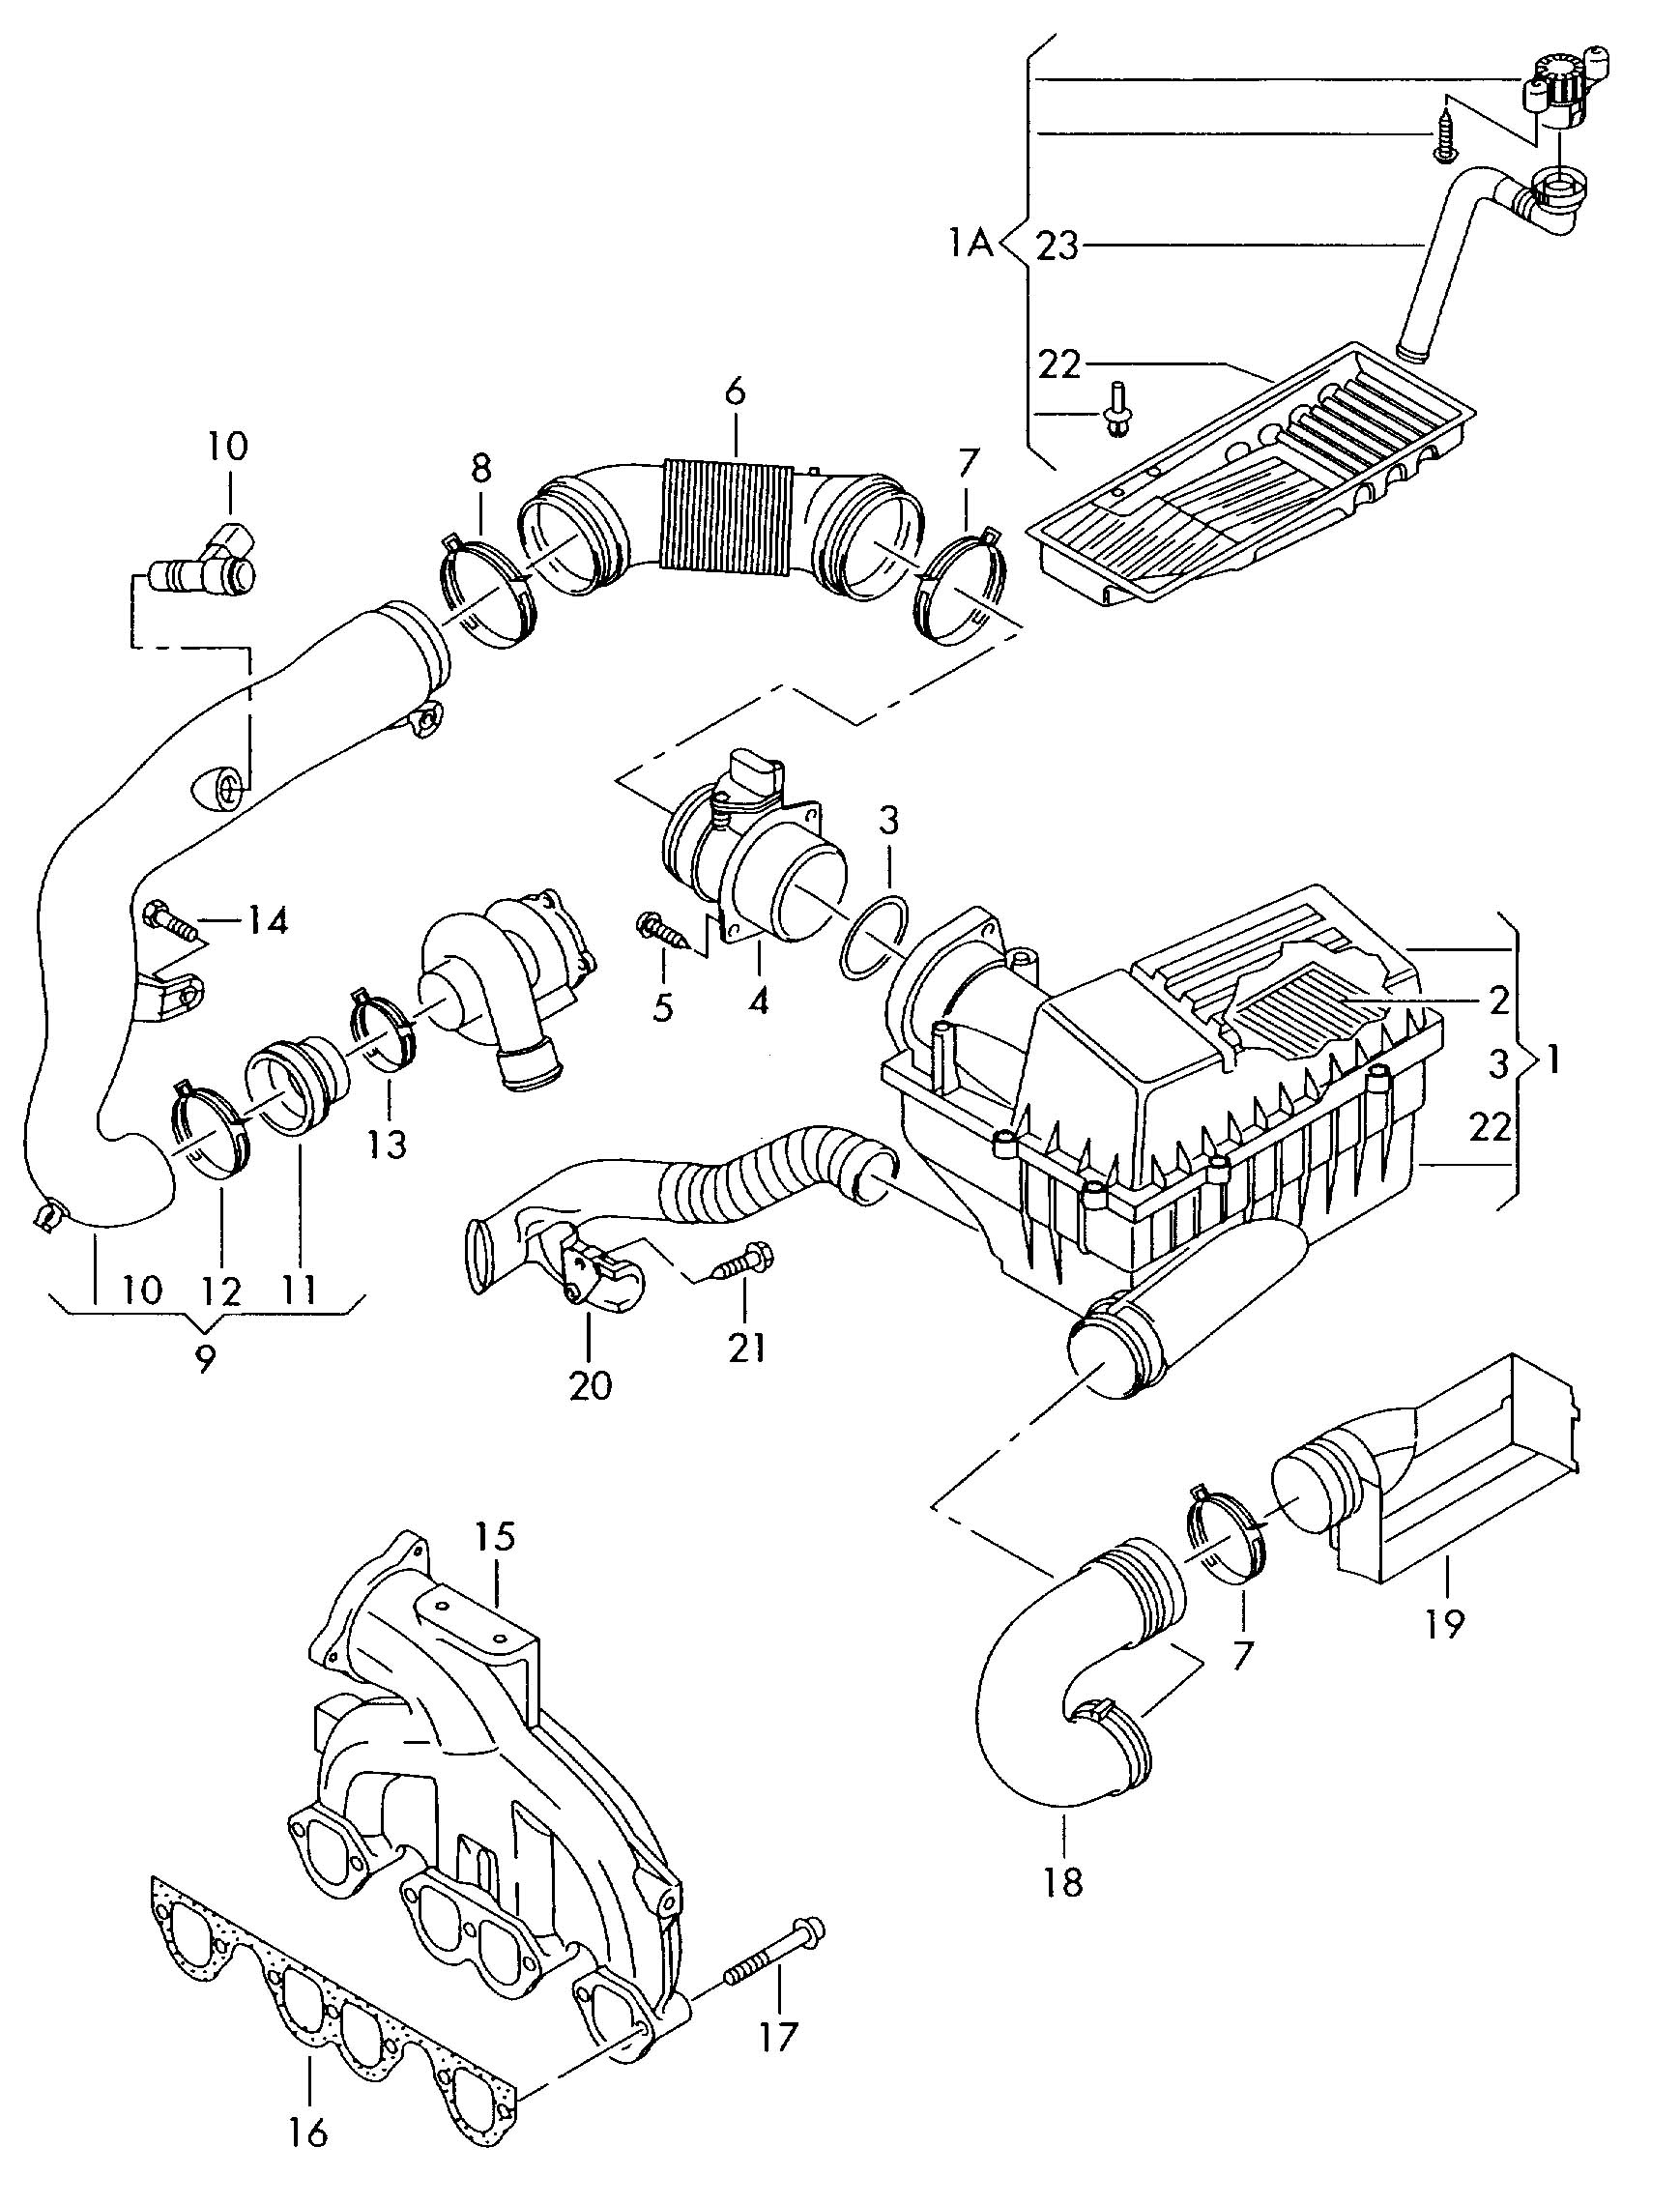 Volkswagen Jetta Intake Pipe For Vehicle Use In Cold